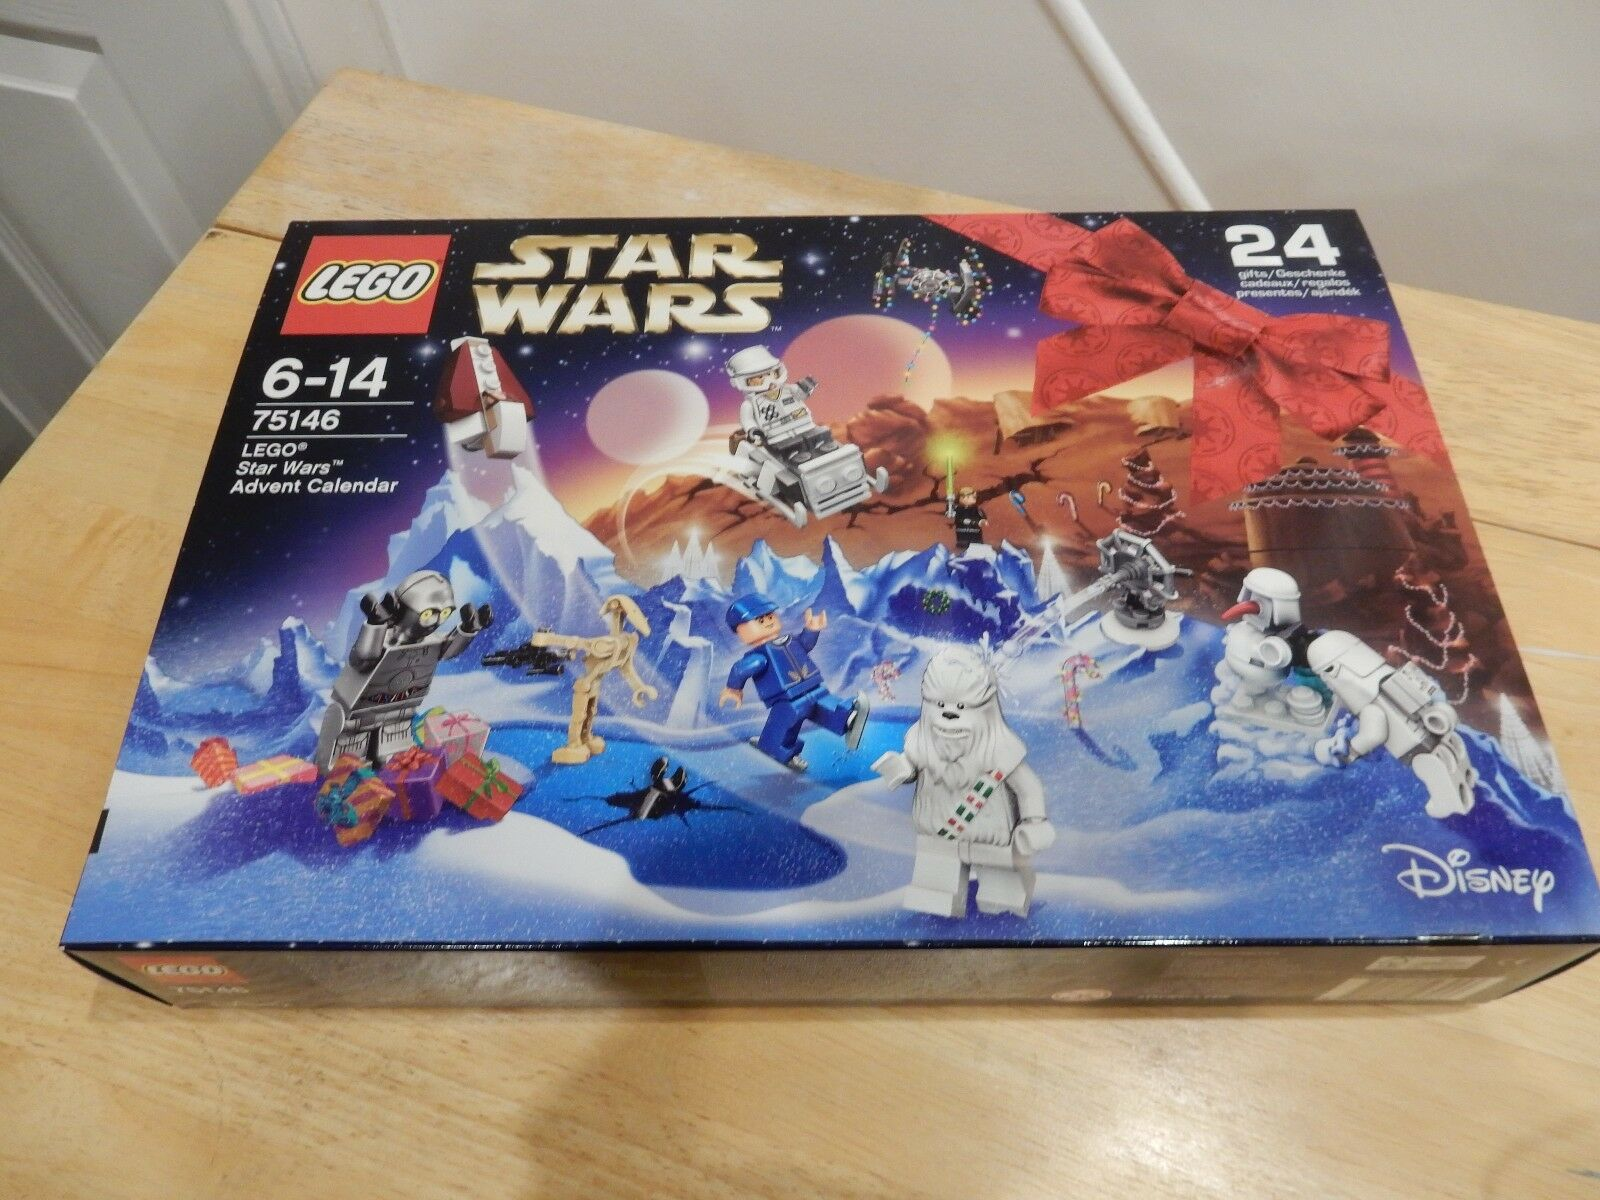 LEGO 75146 STAR WARS ADVENT CALENDAR NEW SEALED 2016 COMPLETE